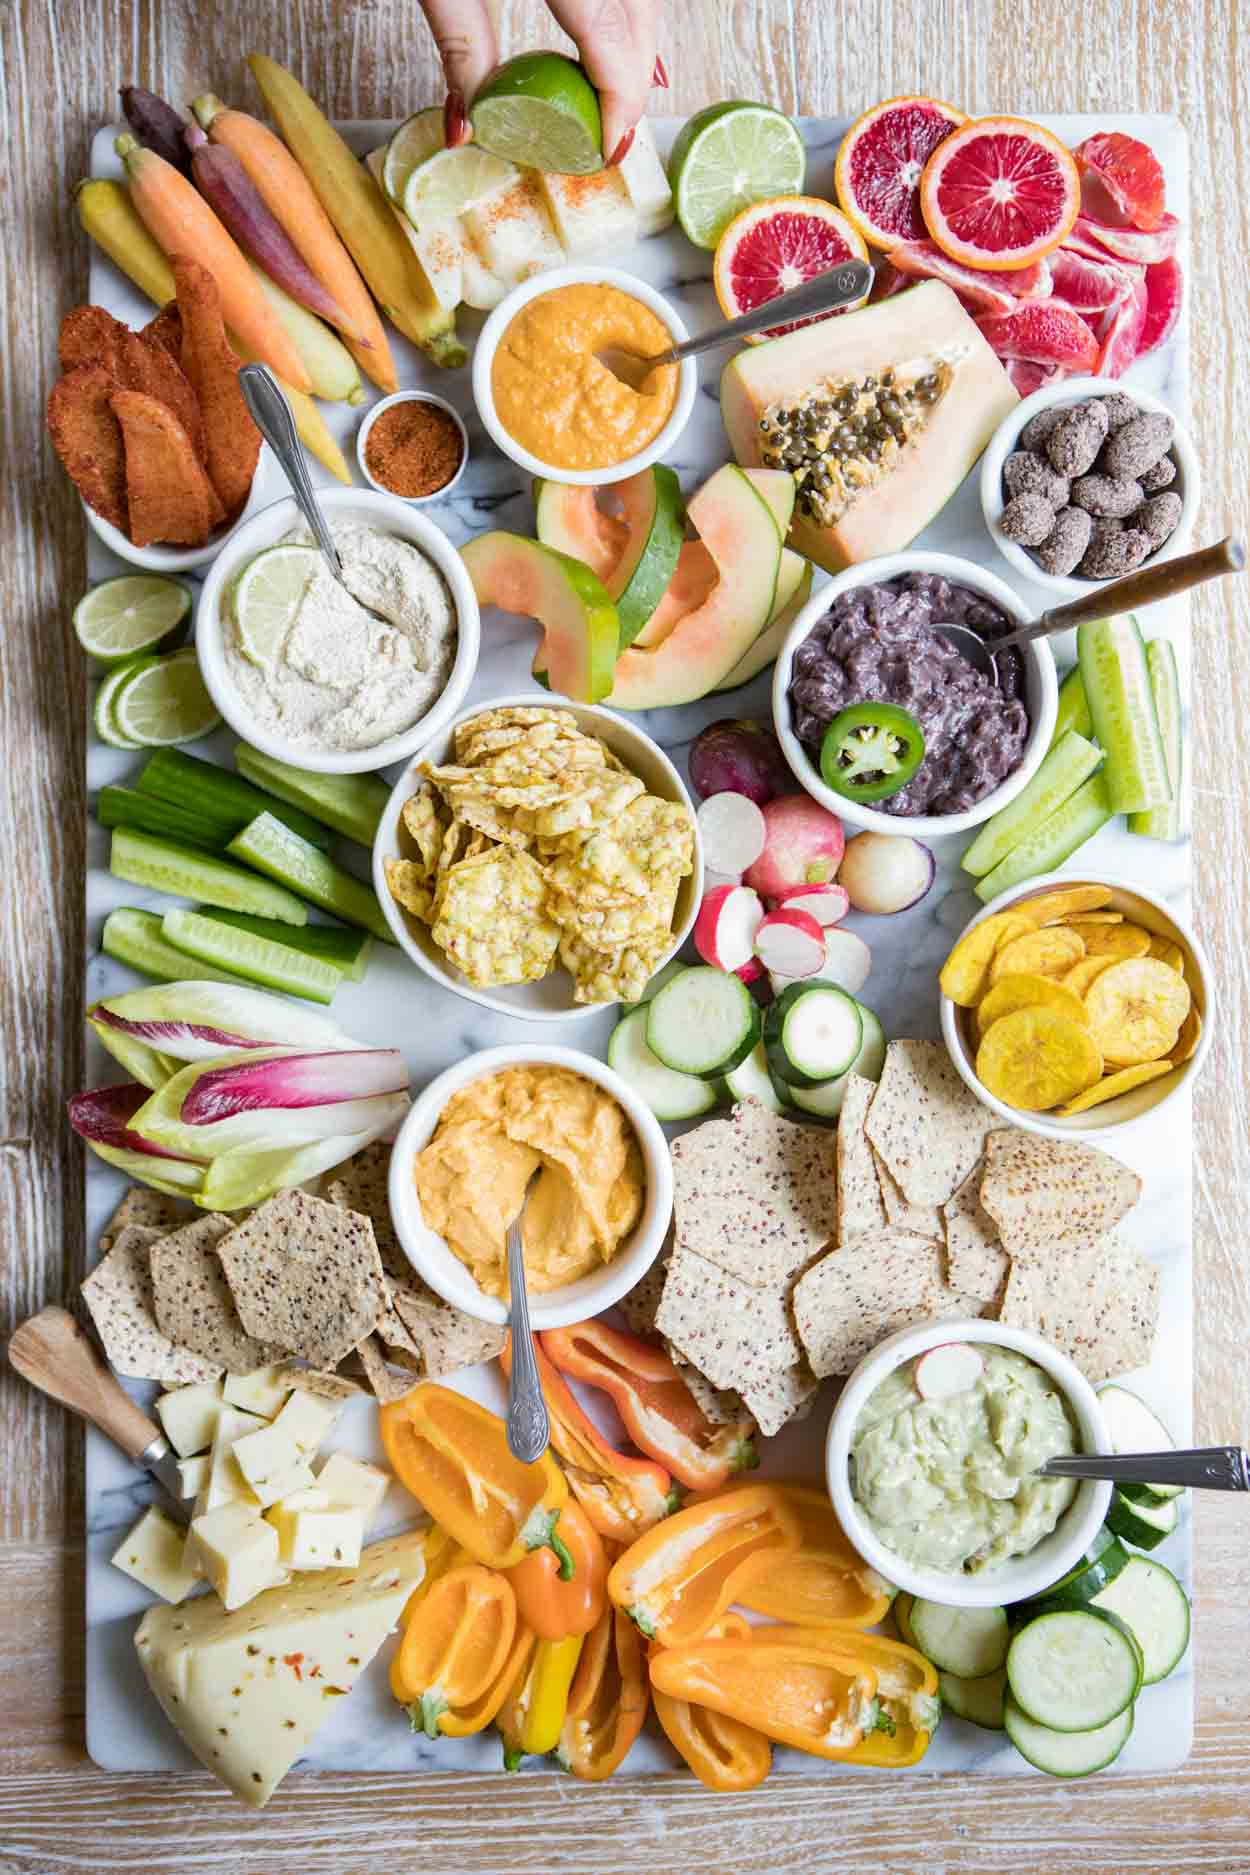 cucumbers, peppers, chips, dips and various other fruits and veggies on a marble slab for a crudite platter